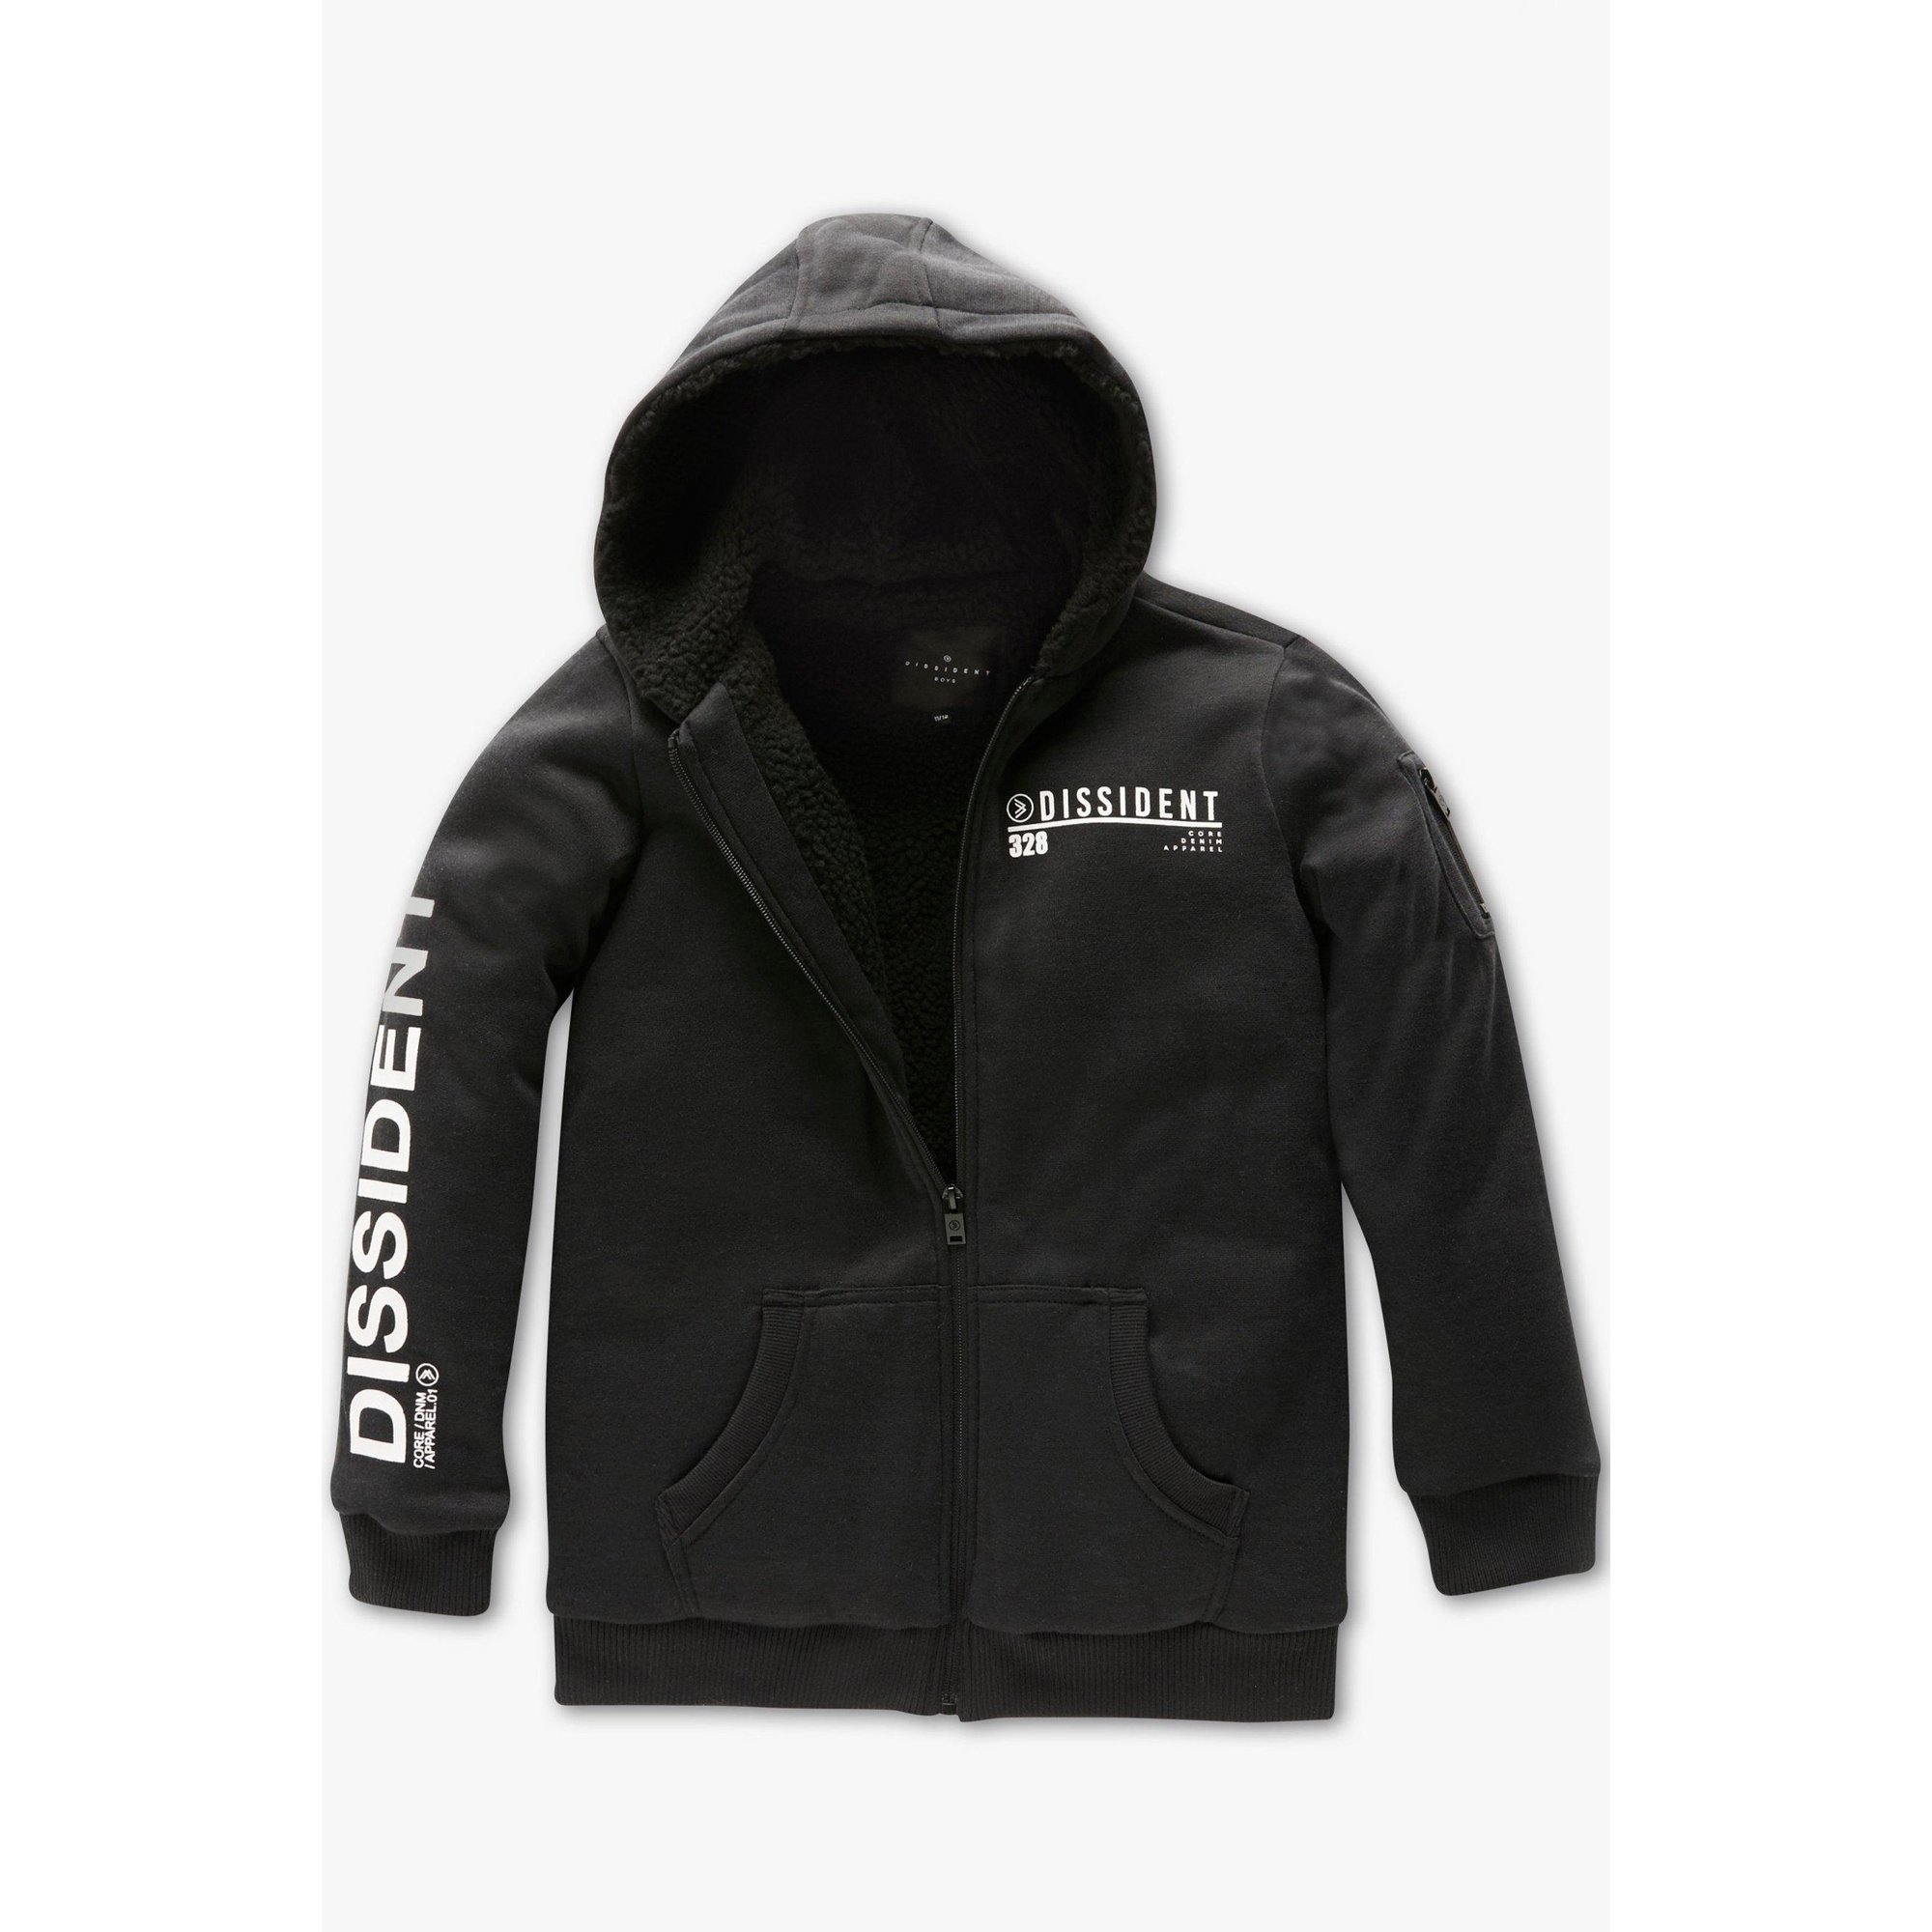 Image of Boys Dissident Borg Lined Black Zip Through Hoody